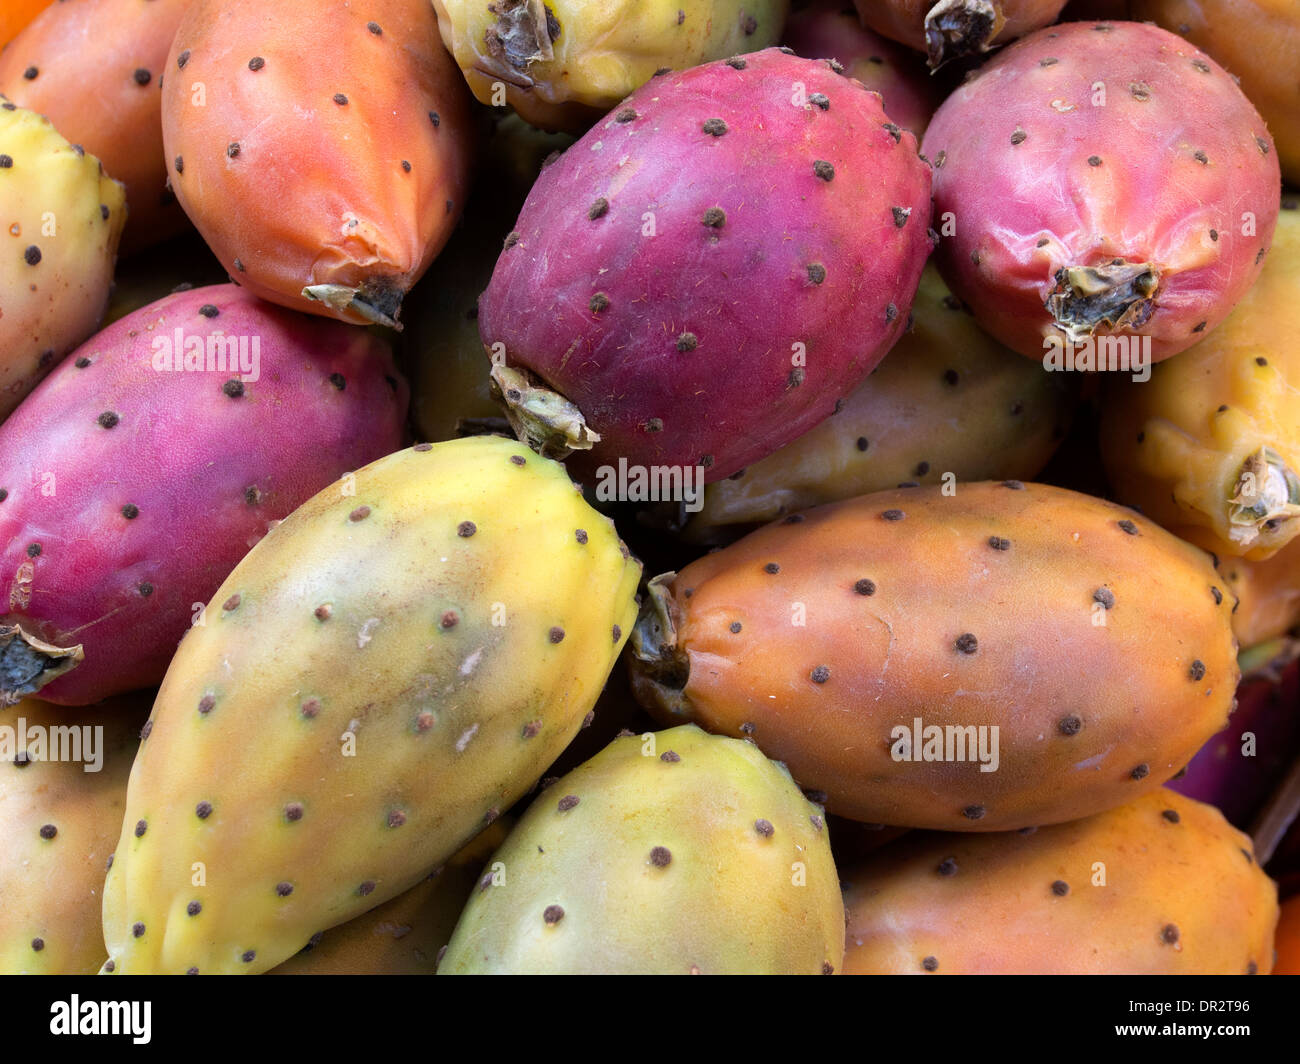 a close-up of prickly-pear fruits on an Italian greengrocer's stall - Stock Image